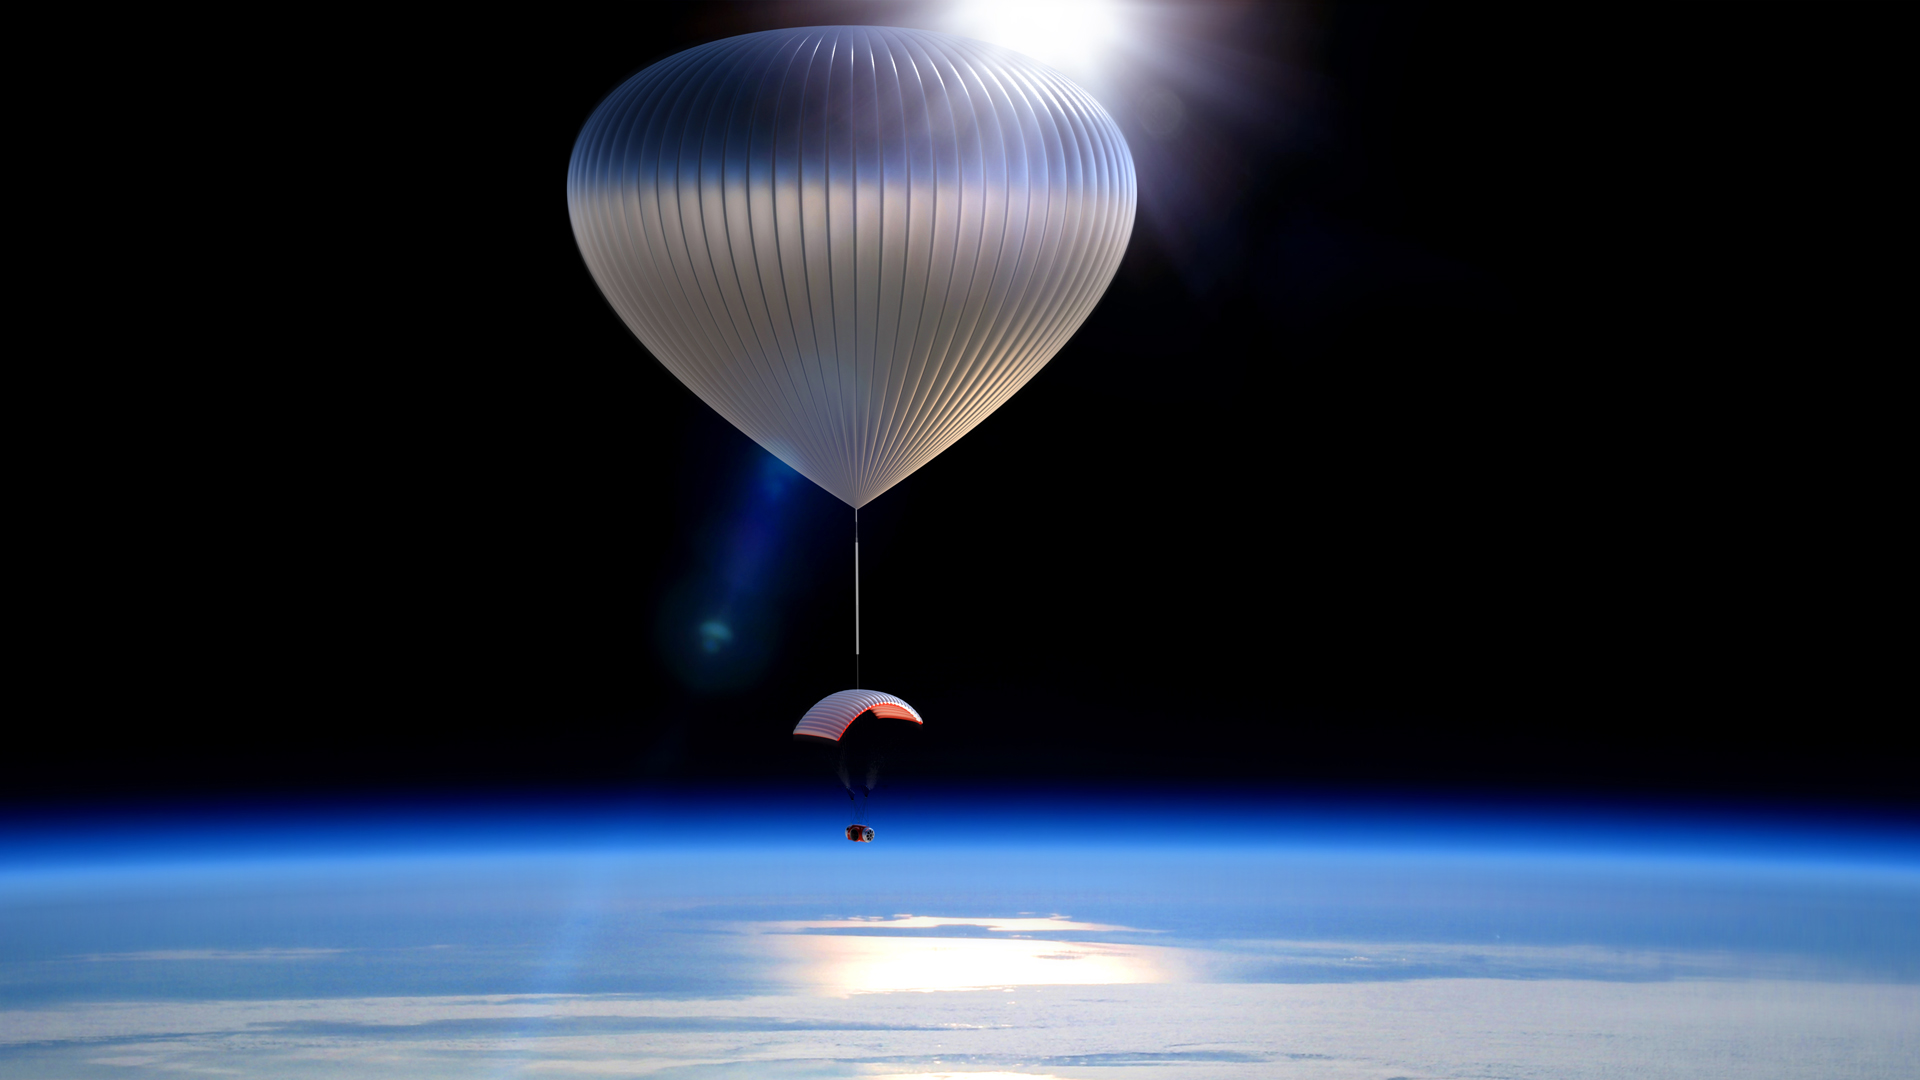 world view balloon lofts nasa experiments to near space heights